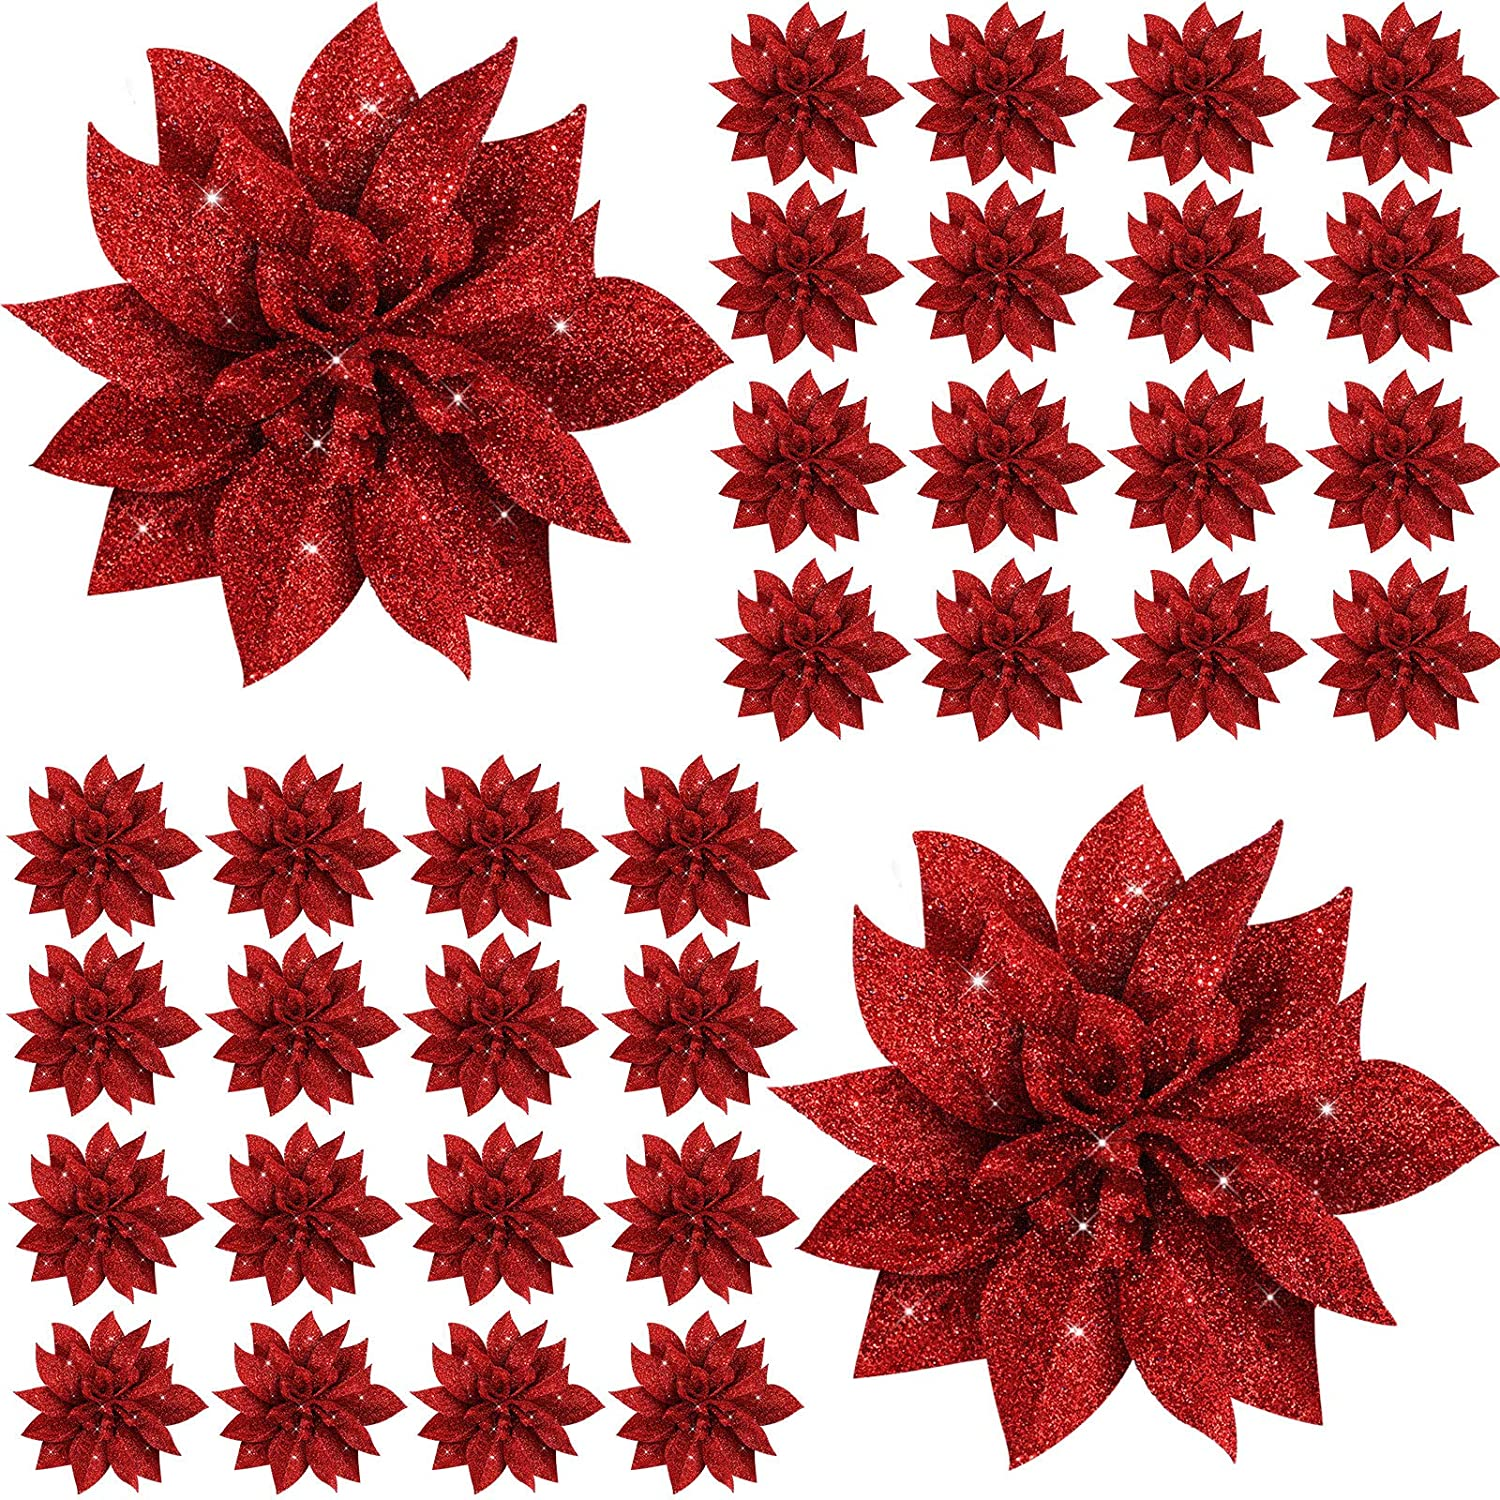 48 Pieces Christmas Glitter Flowers Artificial Poinsettia Flowers for Christmas Wreath Christmas Tree Flowers Ornaments (Red)